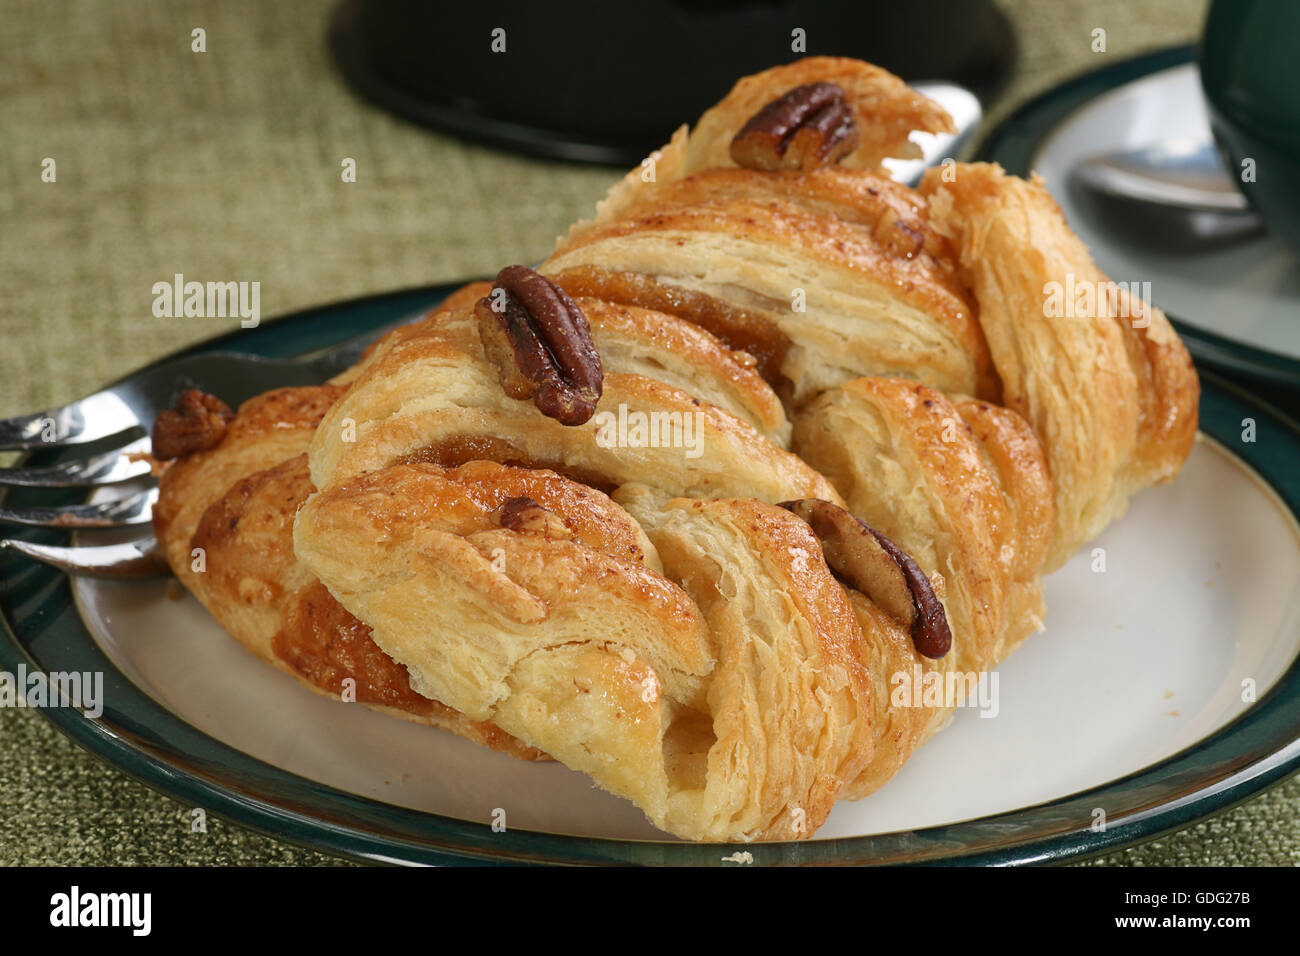 pecan and maple syrup danish pastry - Stock Image